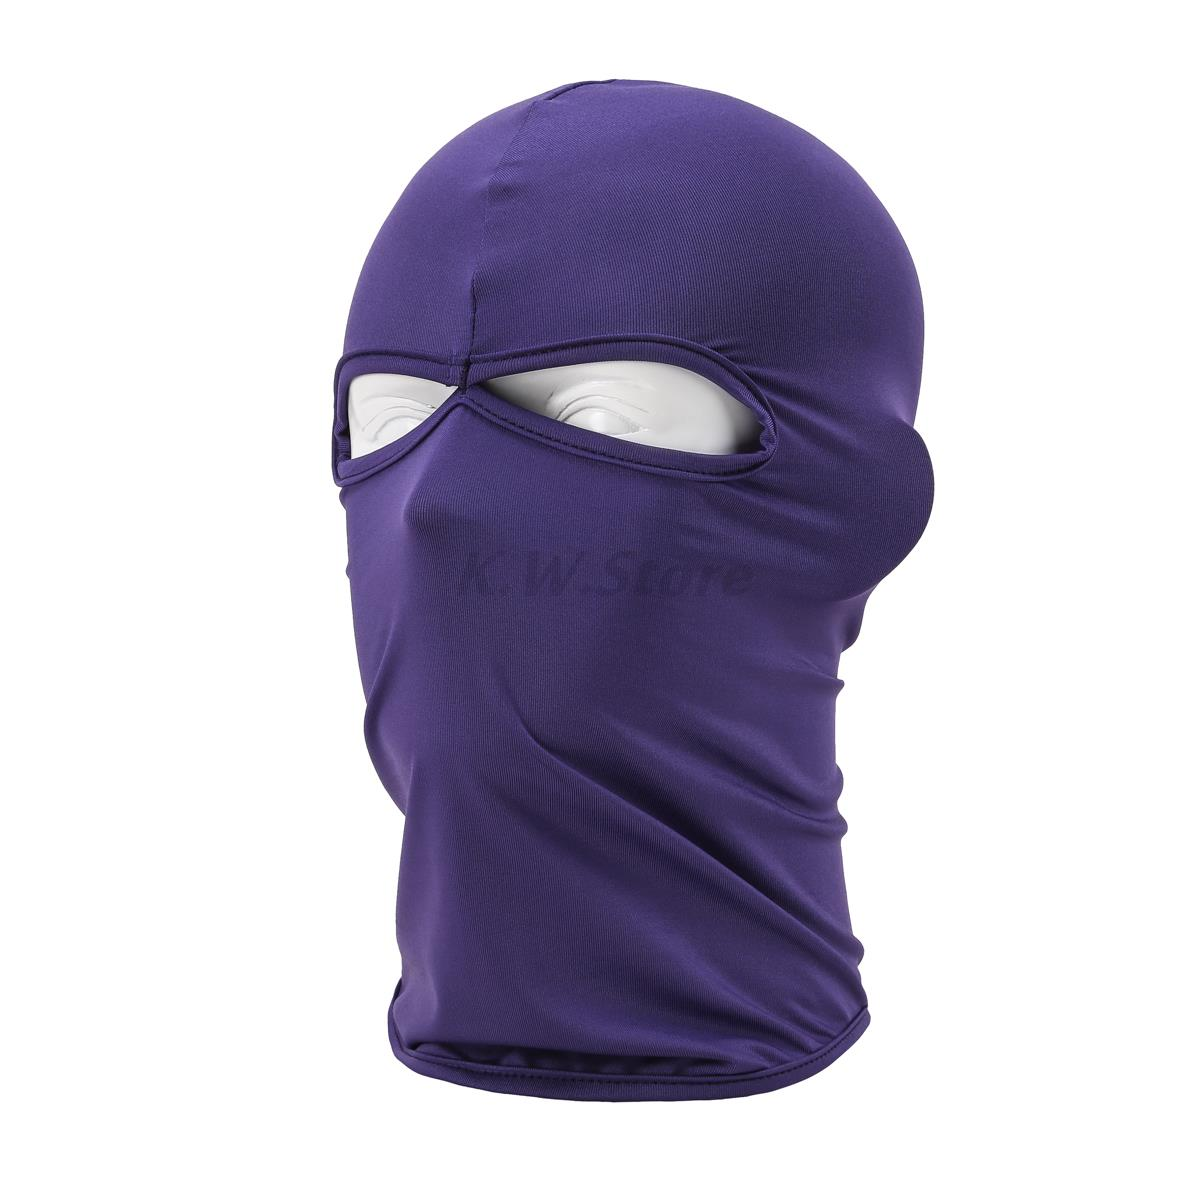 2017 New Ski Balaclava Masked Hat Hunting Motorcycle Head Cap Cycling Headwear Military Tactical War Game Maks Purple